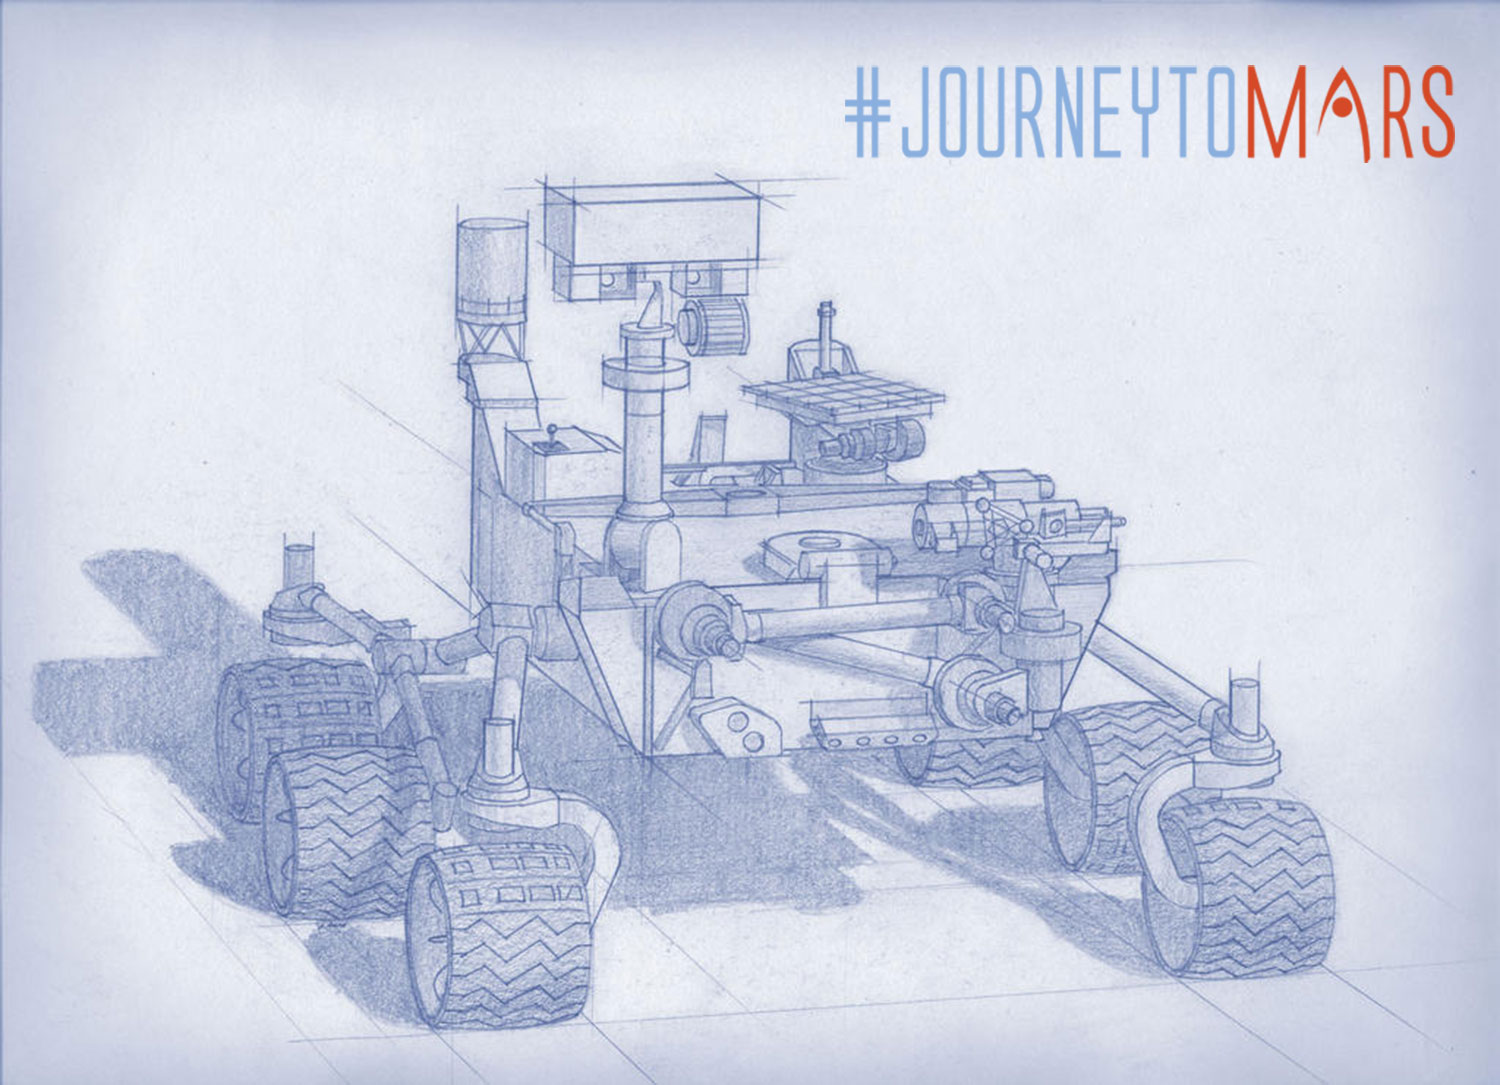 NASA Mars Rover 2020 Diagram